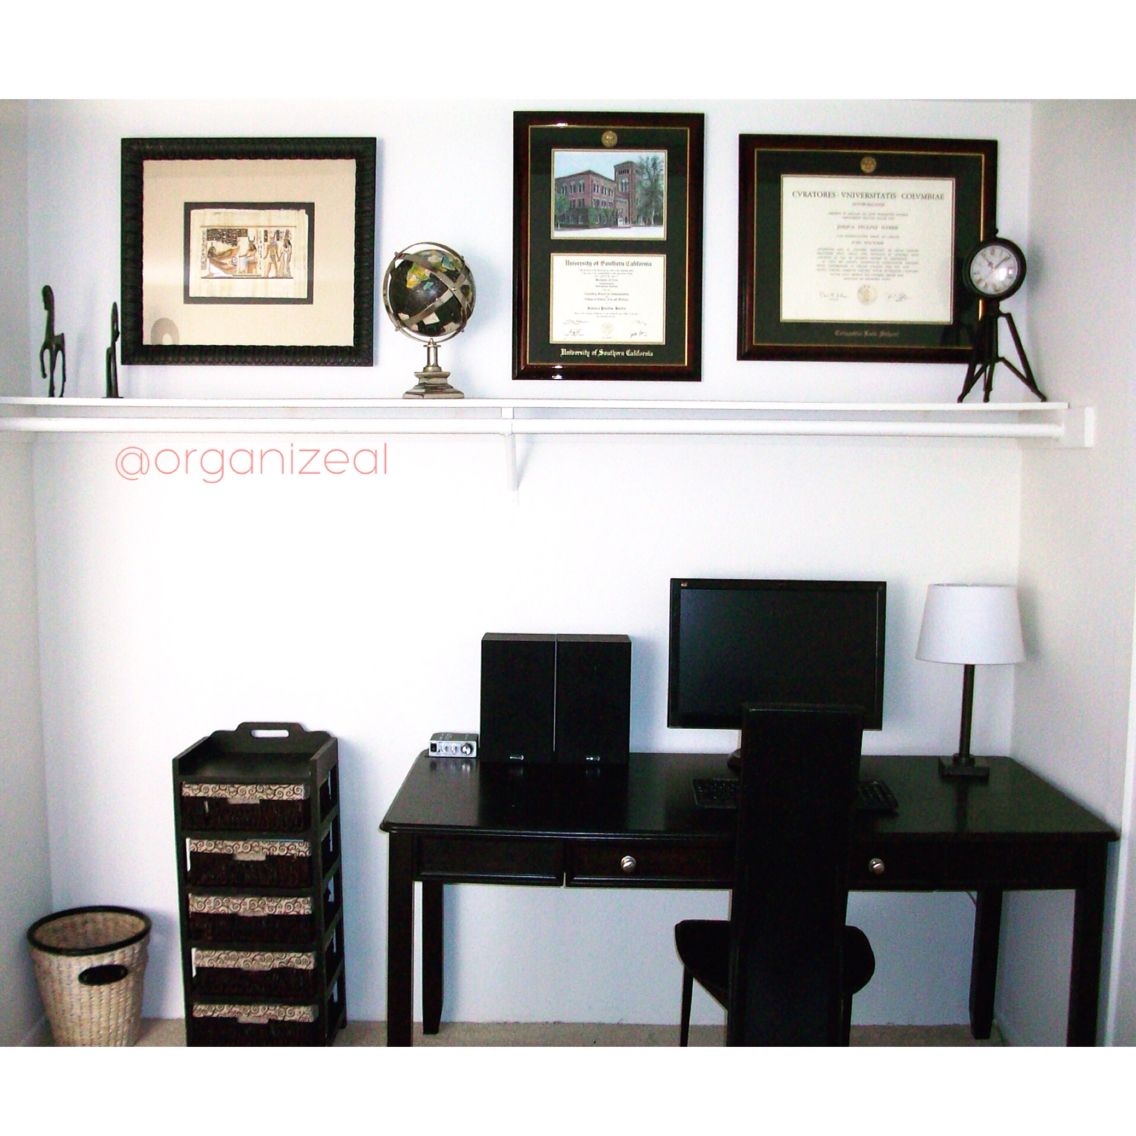 Charmant CLOSET Turned PAPERLESS HOME OFFICE Another Successful Space Transformed By  Www.Organizeal.com #